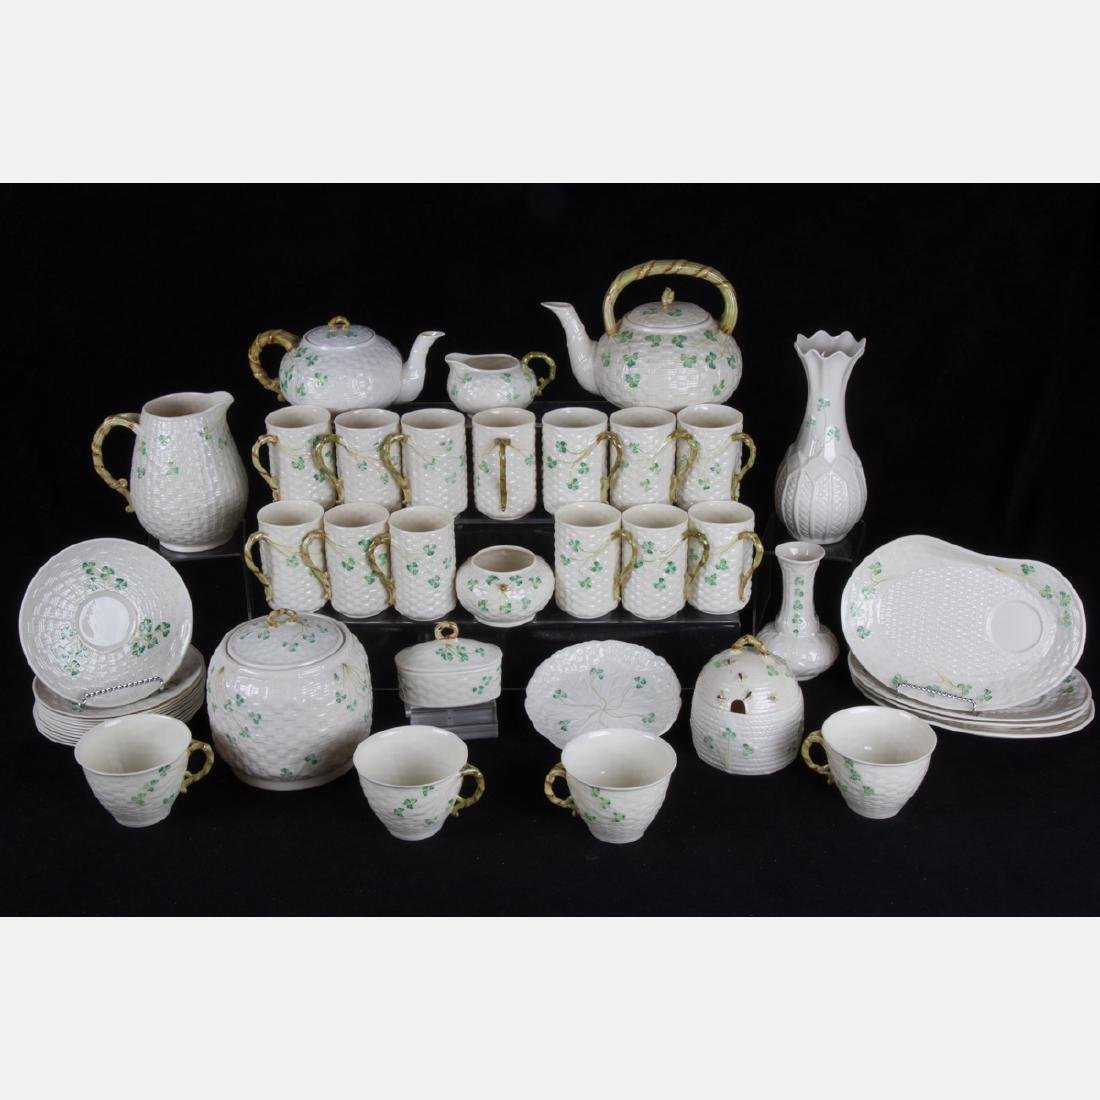 A Collection of Belleek Porcelain Serving and